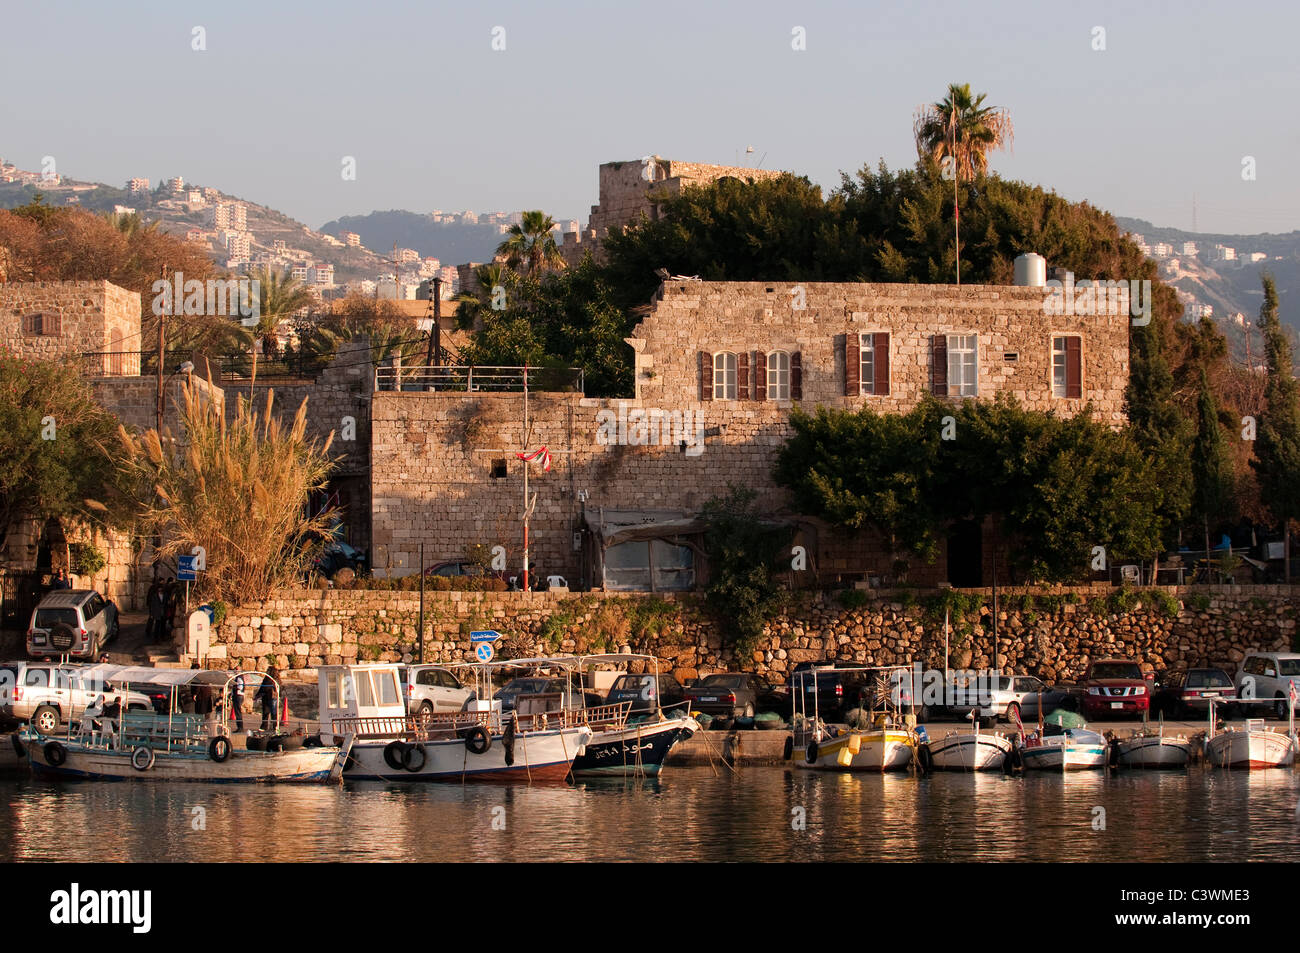 Le port de Byblos Beyrouth Liban Photo Stock